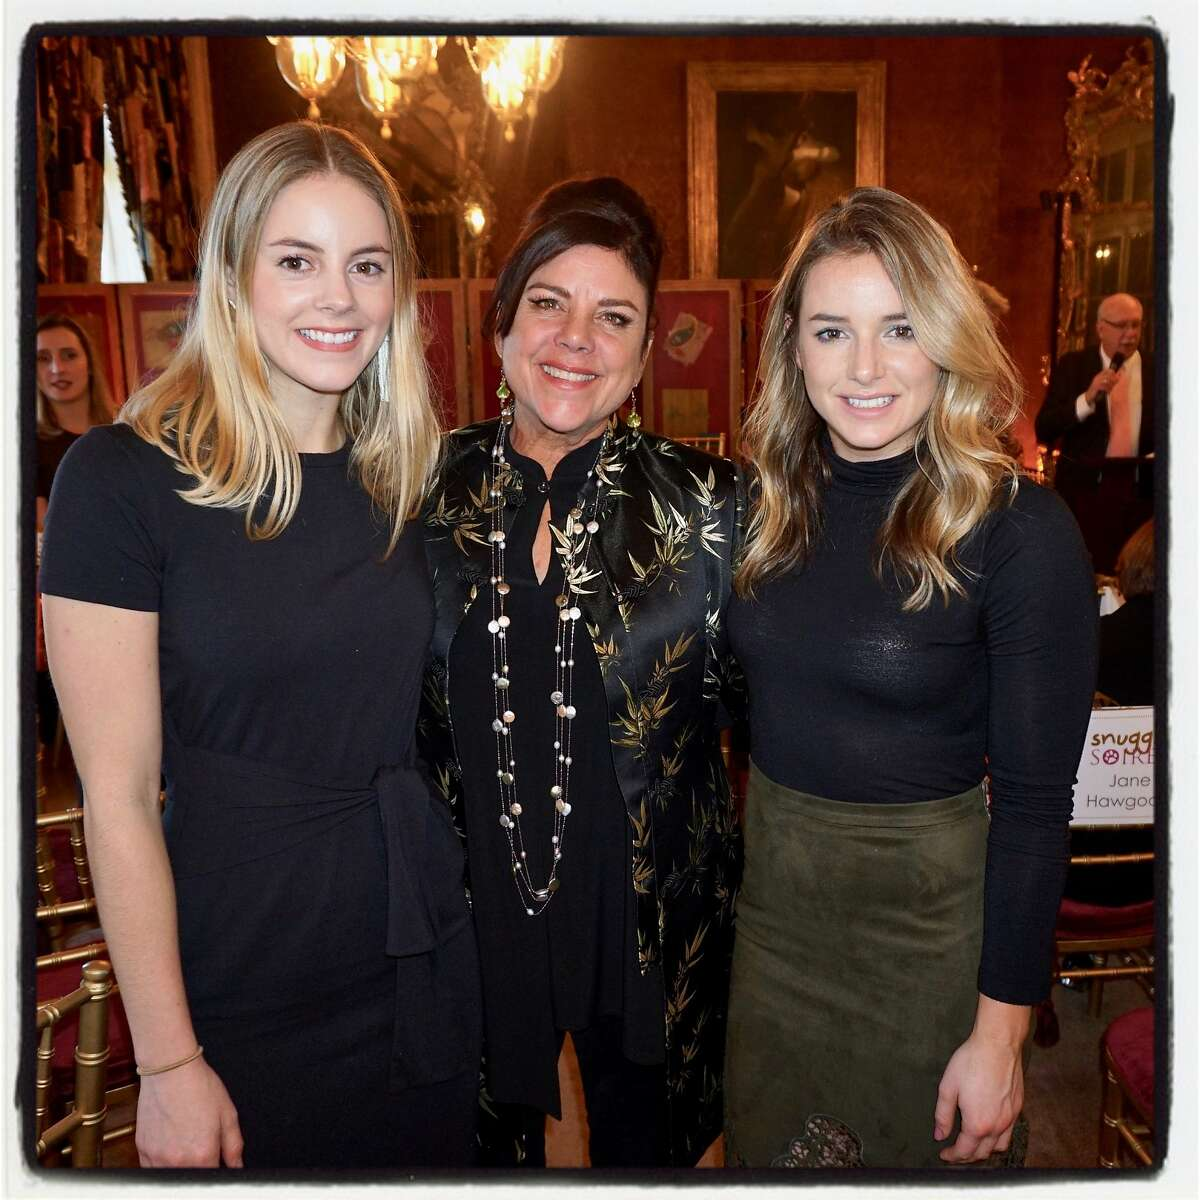 Christie Ring (left) with her mom, Connie, and sister, Katie Ring, at the Snuggly Soiree. March 26, 2018